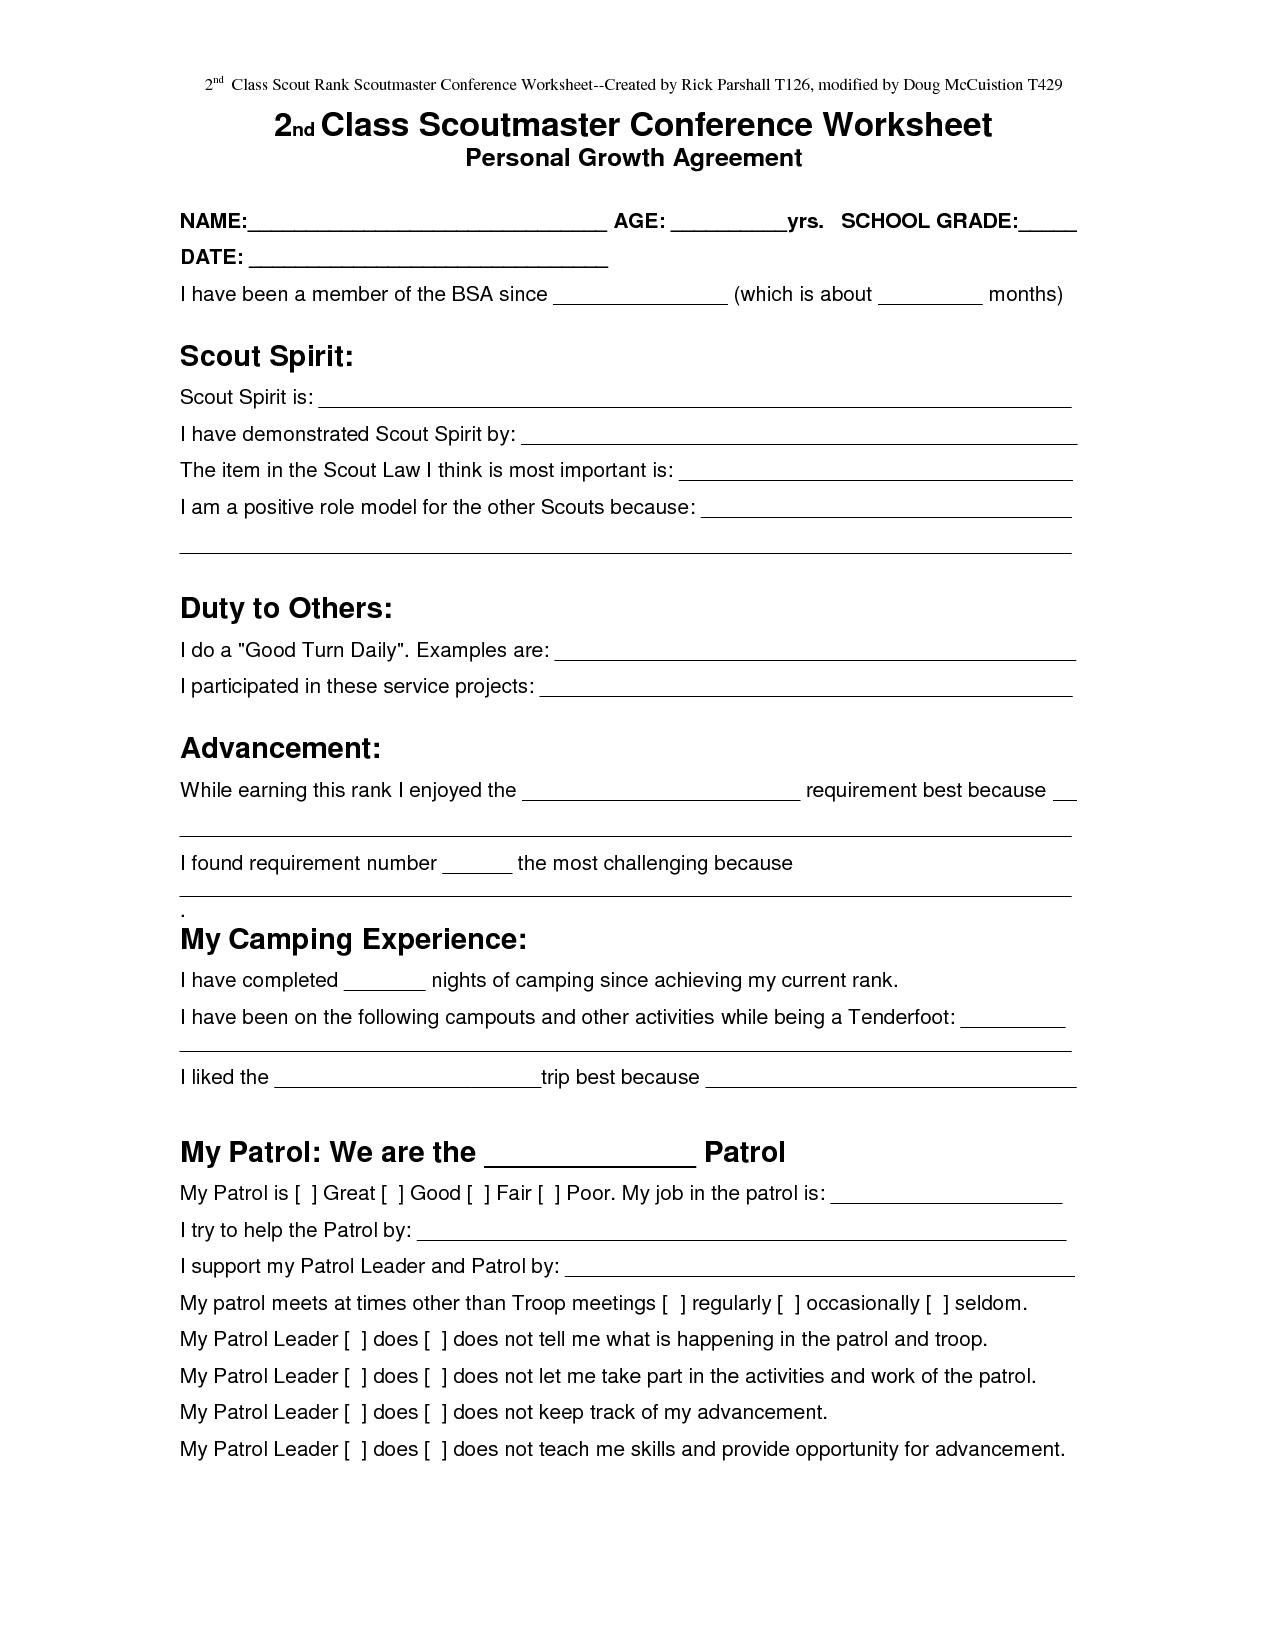 Boy Scout Rank Advancement Form